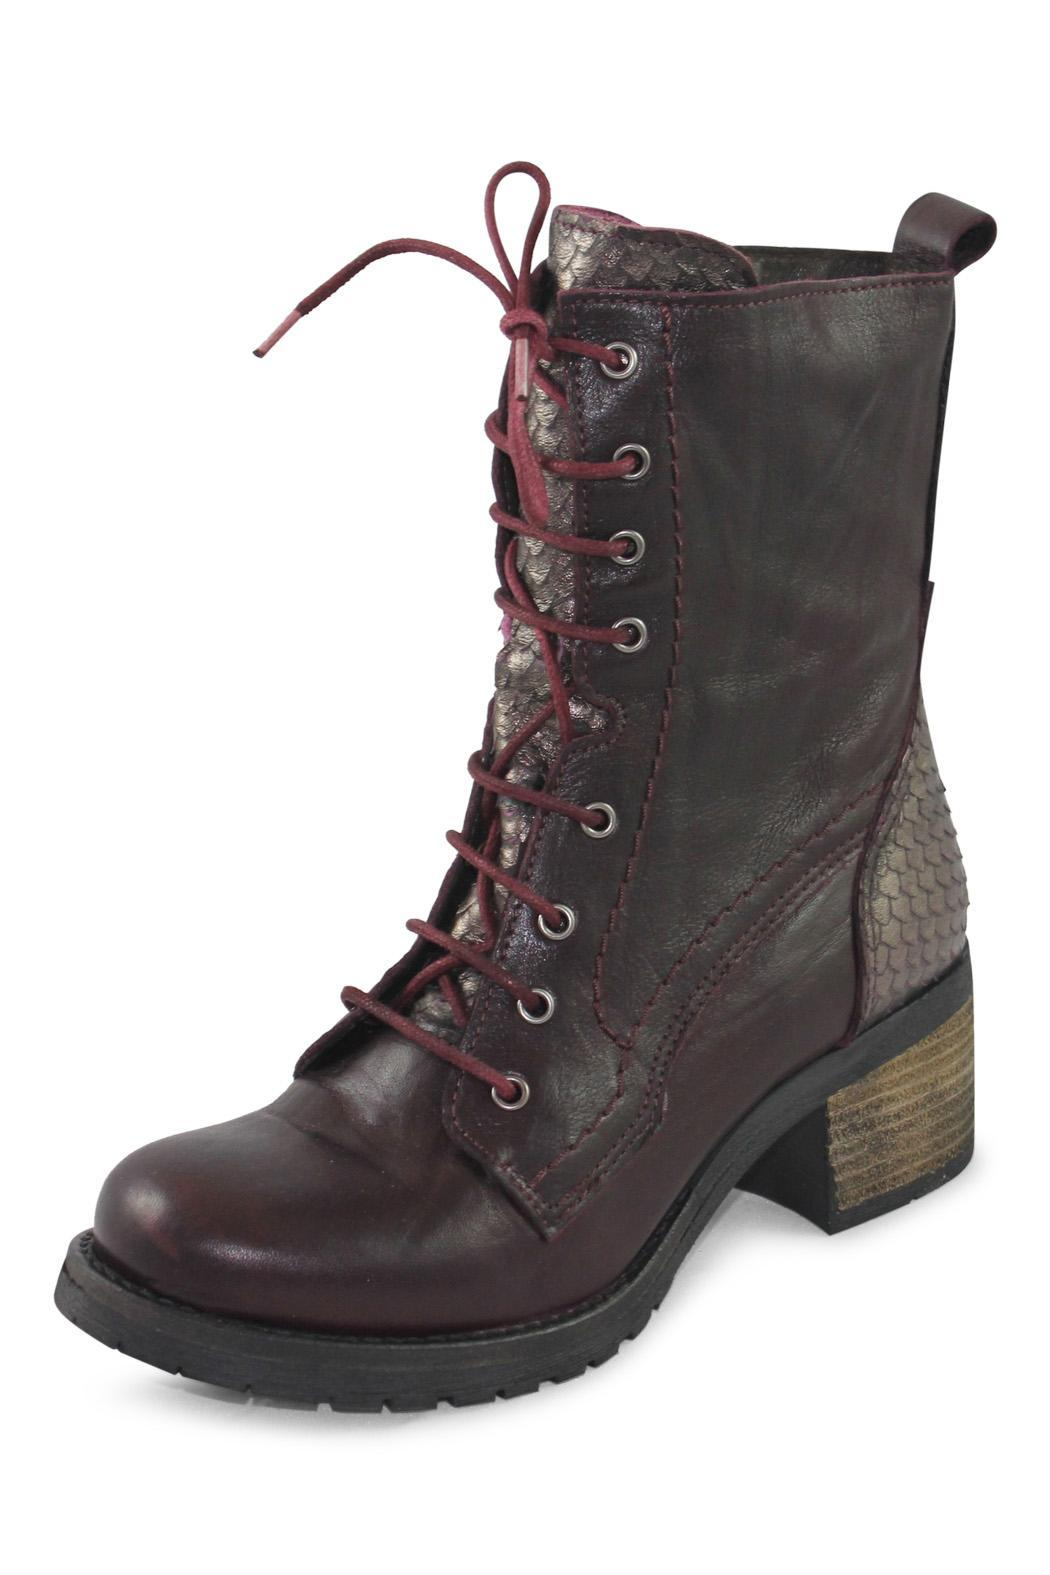 felmini dress boot from columbia by big boot